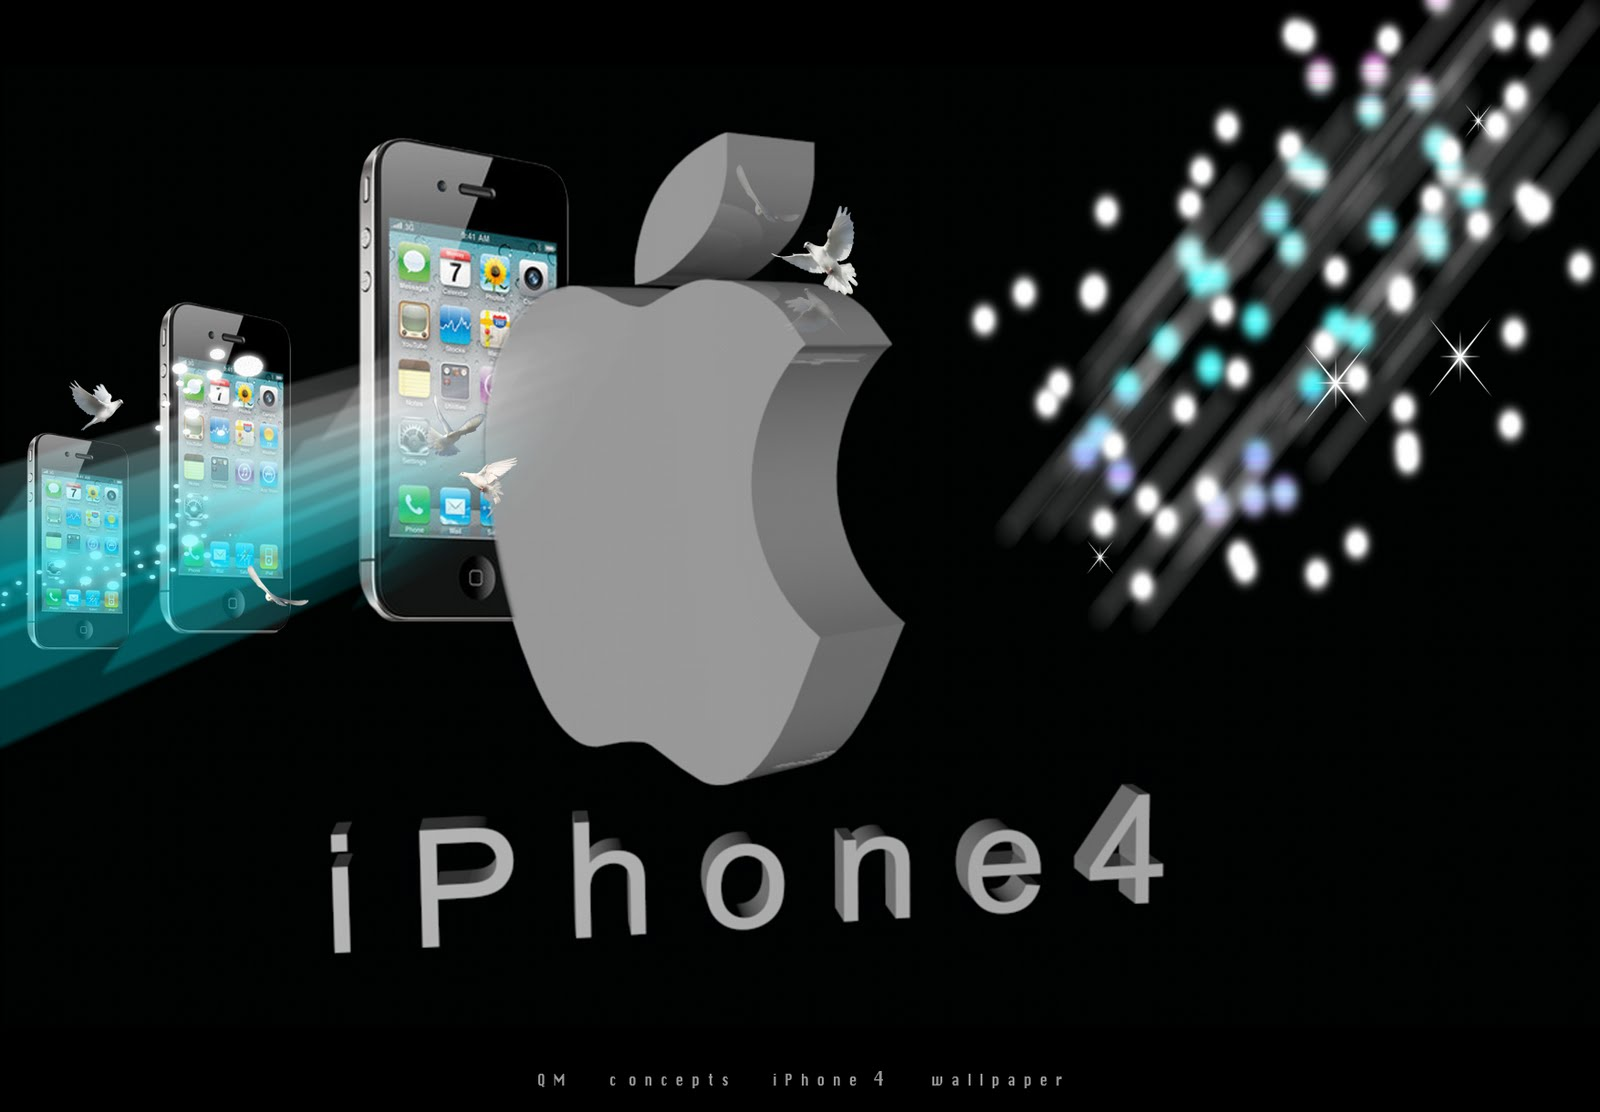 New-blog-pics: Wallpaper 3d Iphone